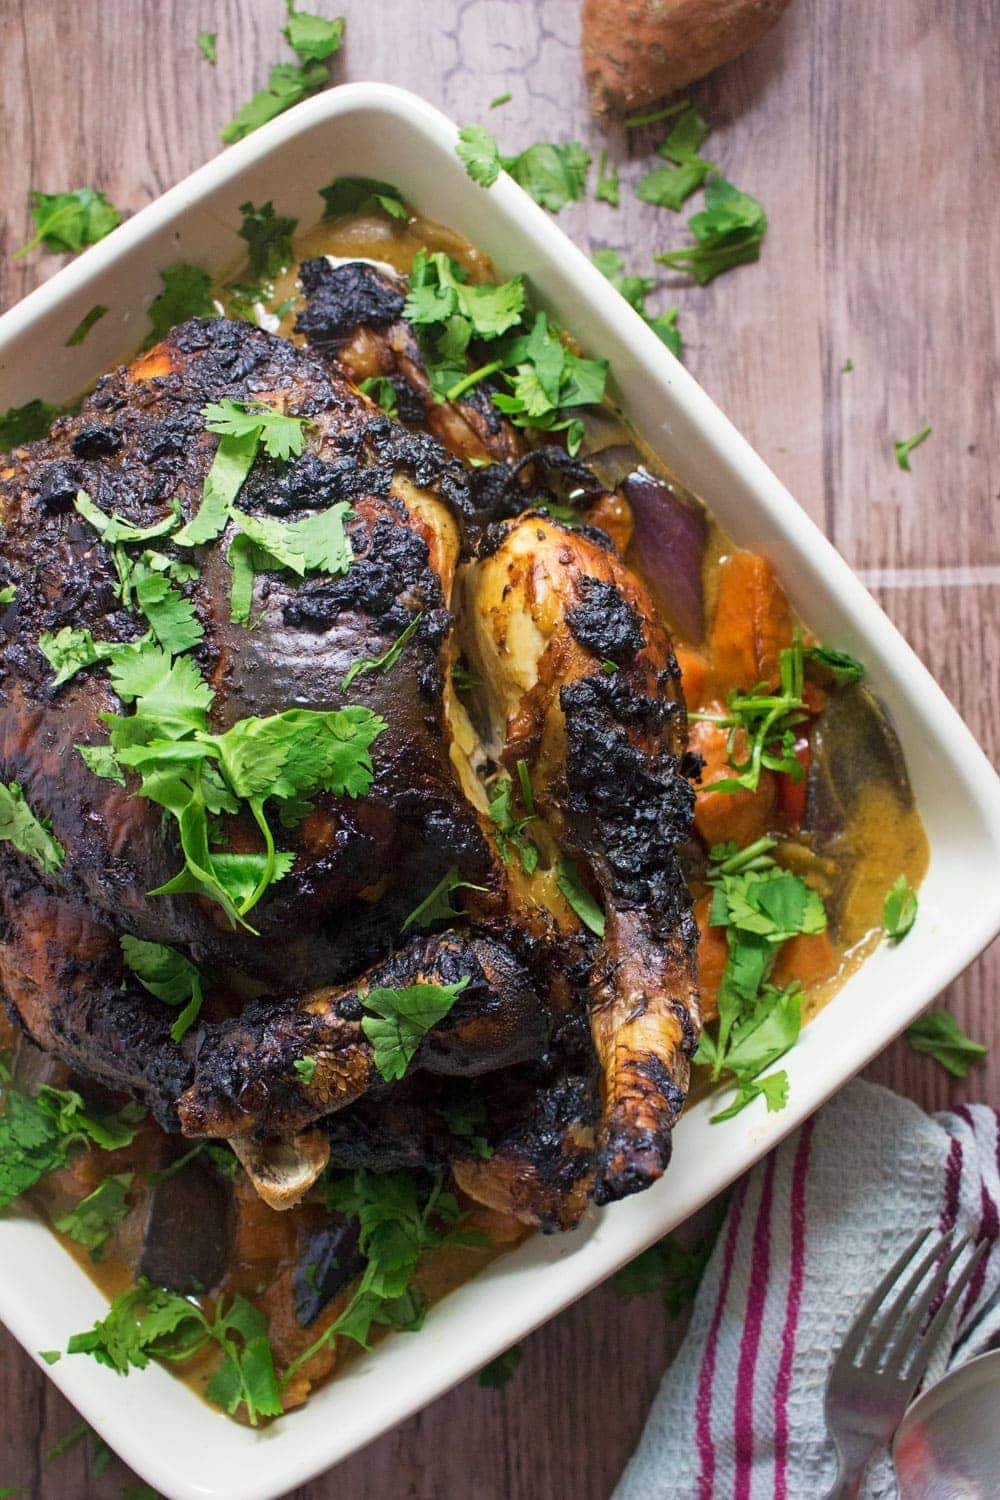 This jerk roasted chicken is coated in jerk spice paste before roasting over chopped vegetables. Serve with a rich and tasty curry sauce made with the cooking juices!